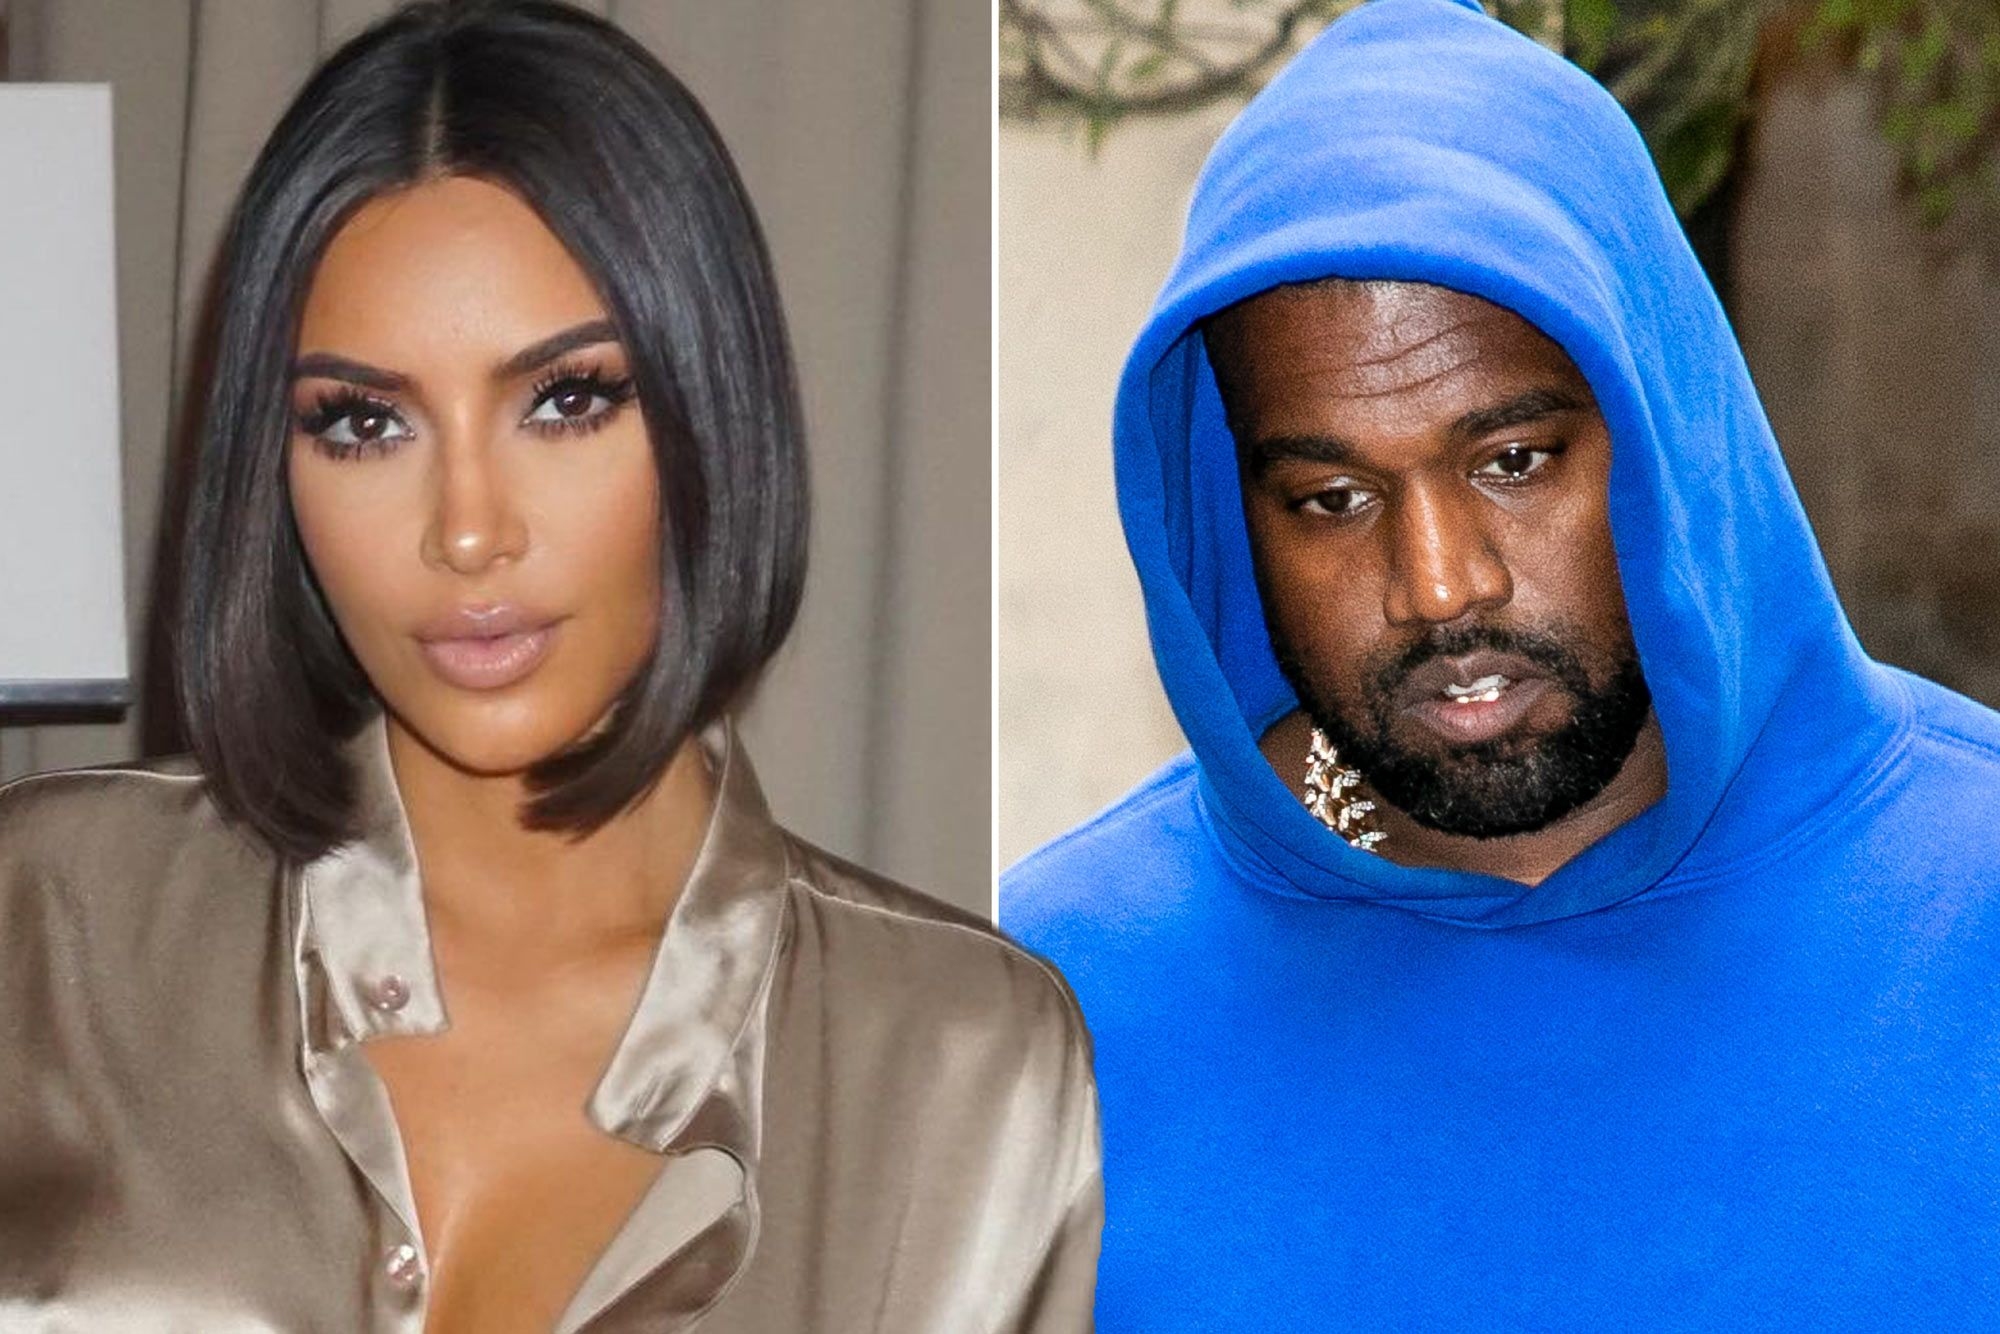 kuwtk-kim-kardashian-will-most-likely-keep-the-60-million-mansion-she-used-to-share-with-kanye-west-after-their-divorce-heres-why